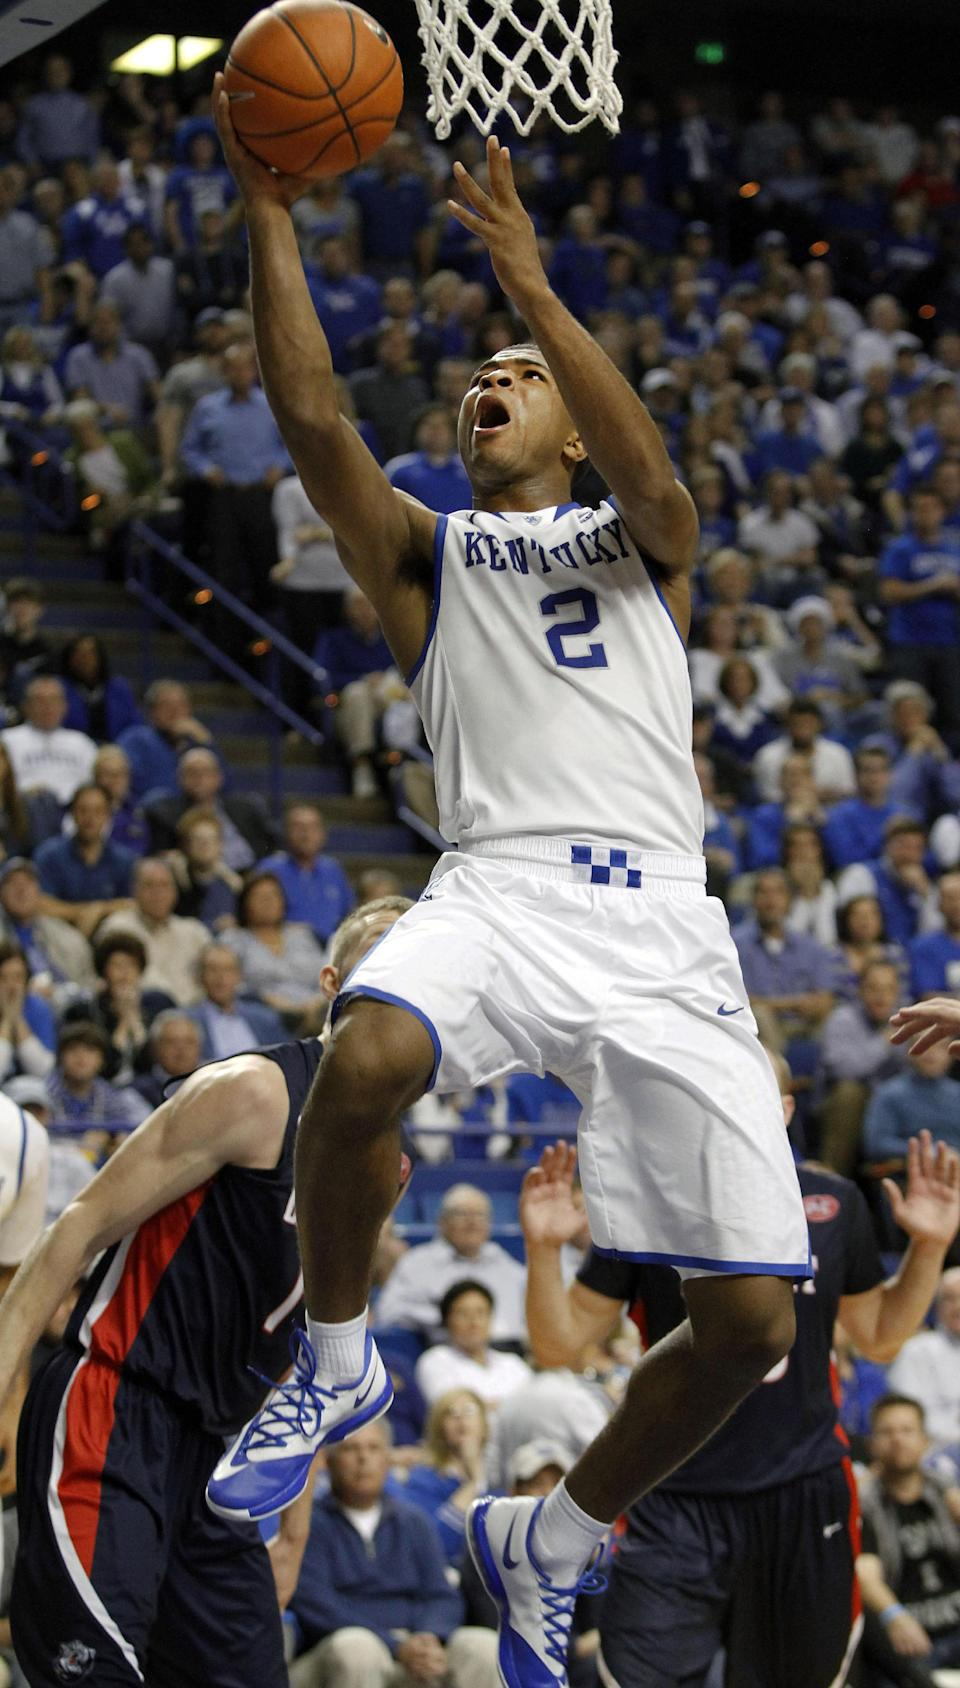 Kentucky's Aaron Harrison (2) shoots in front of Belmont's Drew Windler, left, during the second half of an NCAA college basketball game, Saturday, Dec. 21, 2013, in Lexington, Ky. Kentucky won 93-80. (AP Photo/James Crisp)